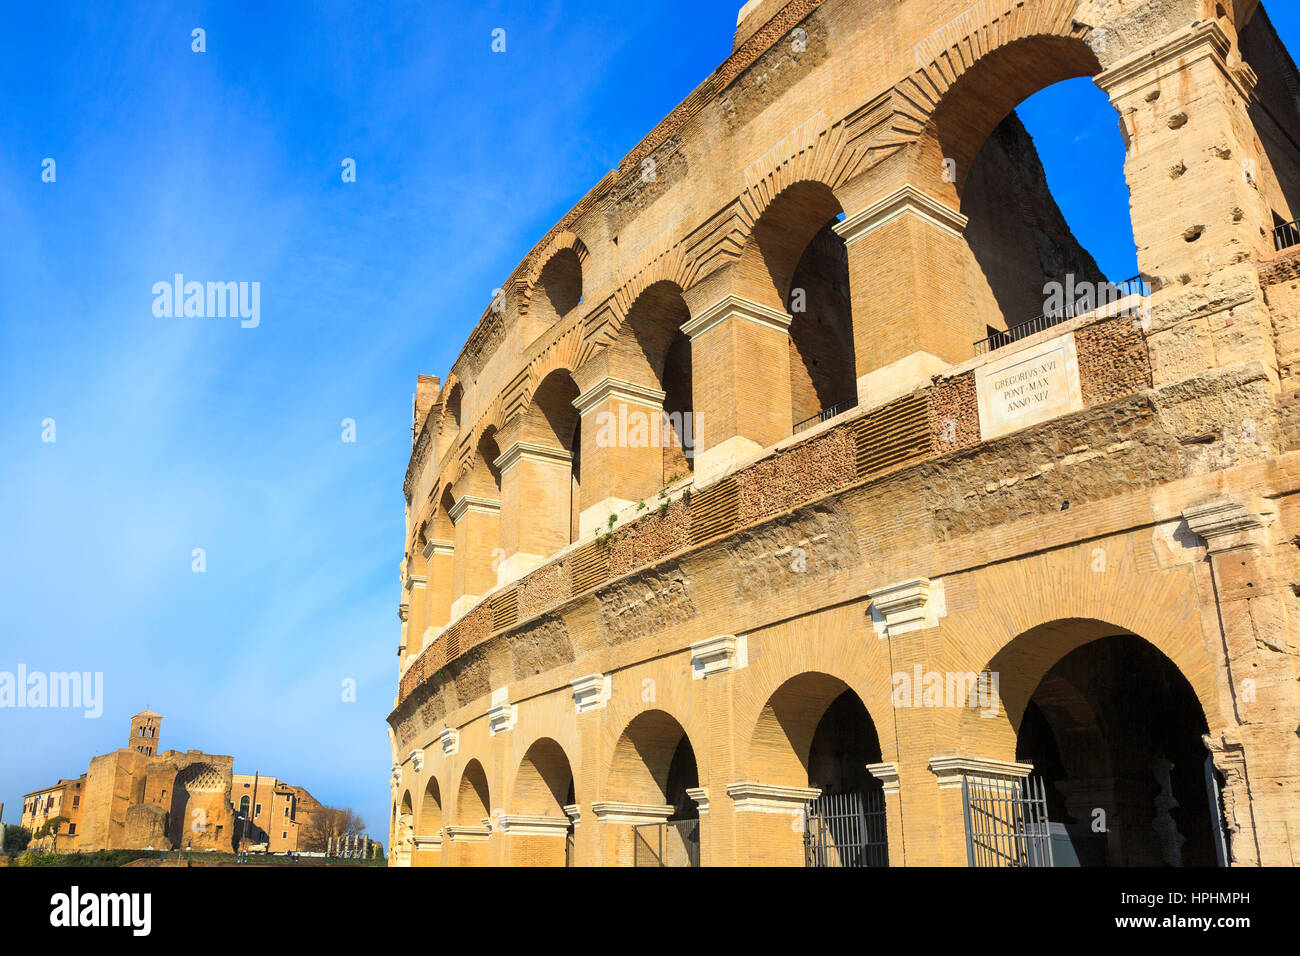 View from the newly repaired and renovated side of The Colosseum towards Palatine Hill, ome, Italy - Stock Image